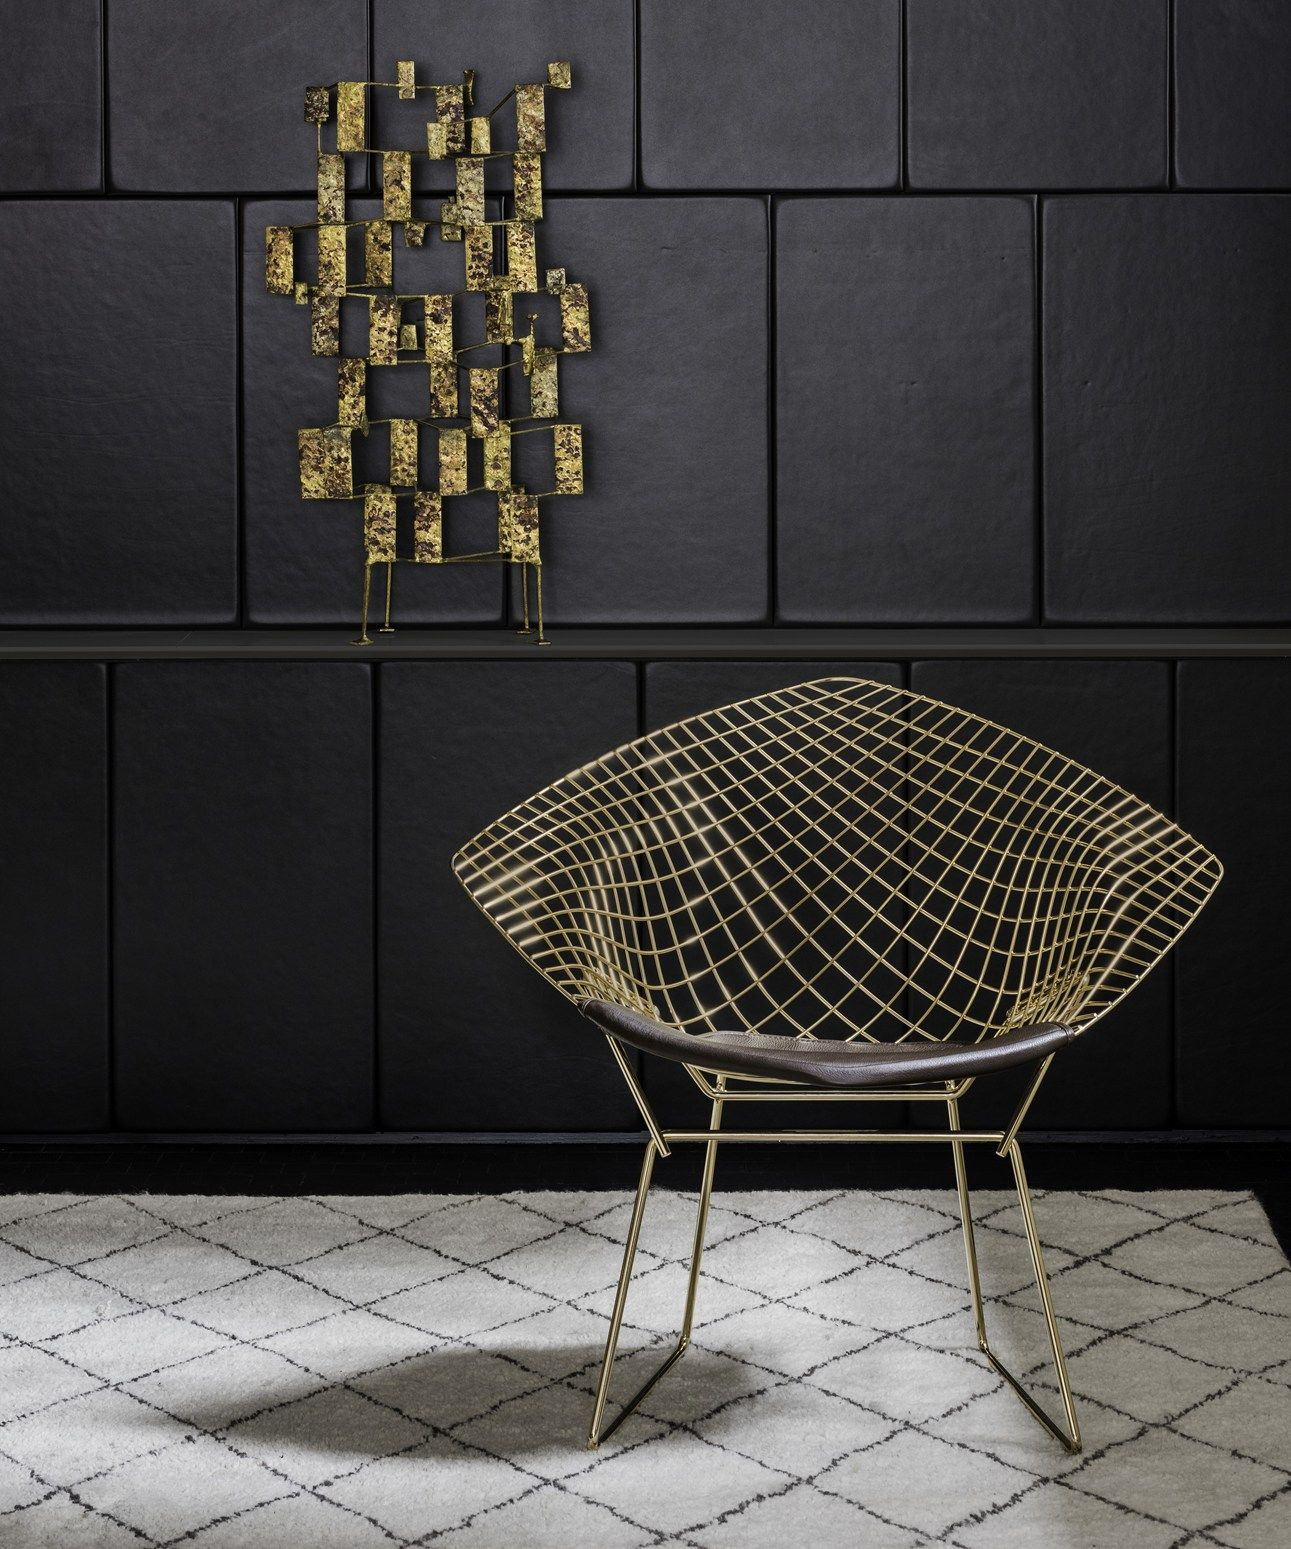 Bertoia diamond chair vintage - Warren Platner Furniture The Iconic Bertoia Diamond And Platner Chairs In Precious Gold Finish Warren